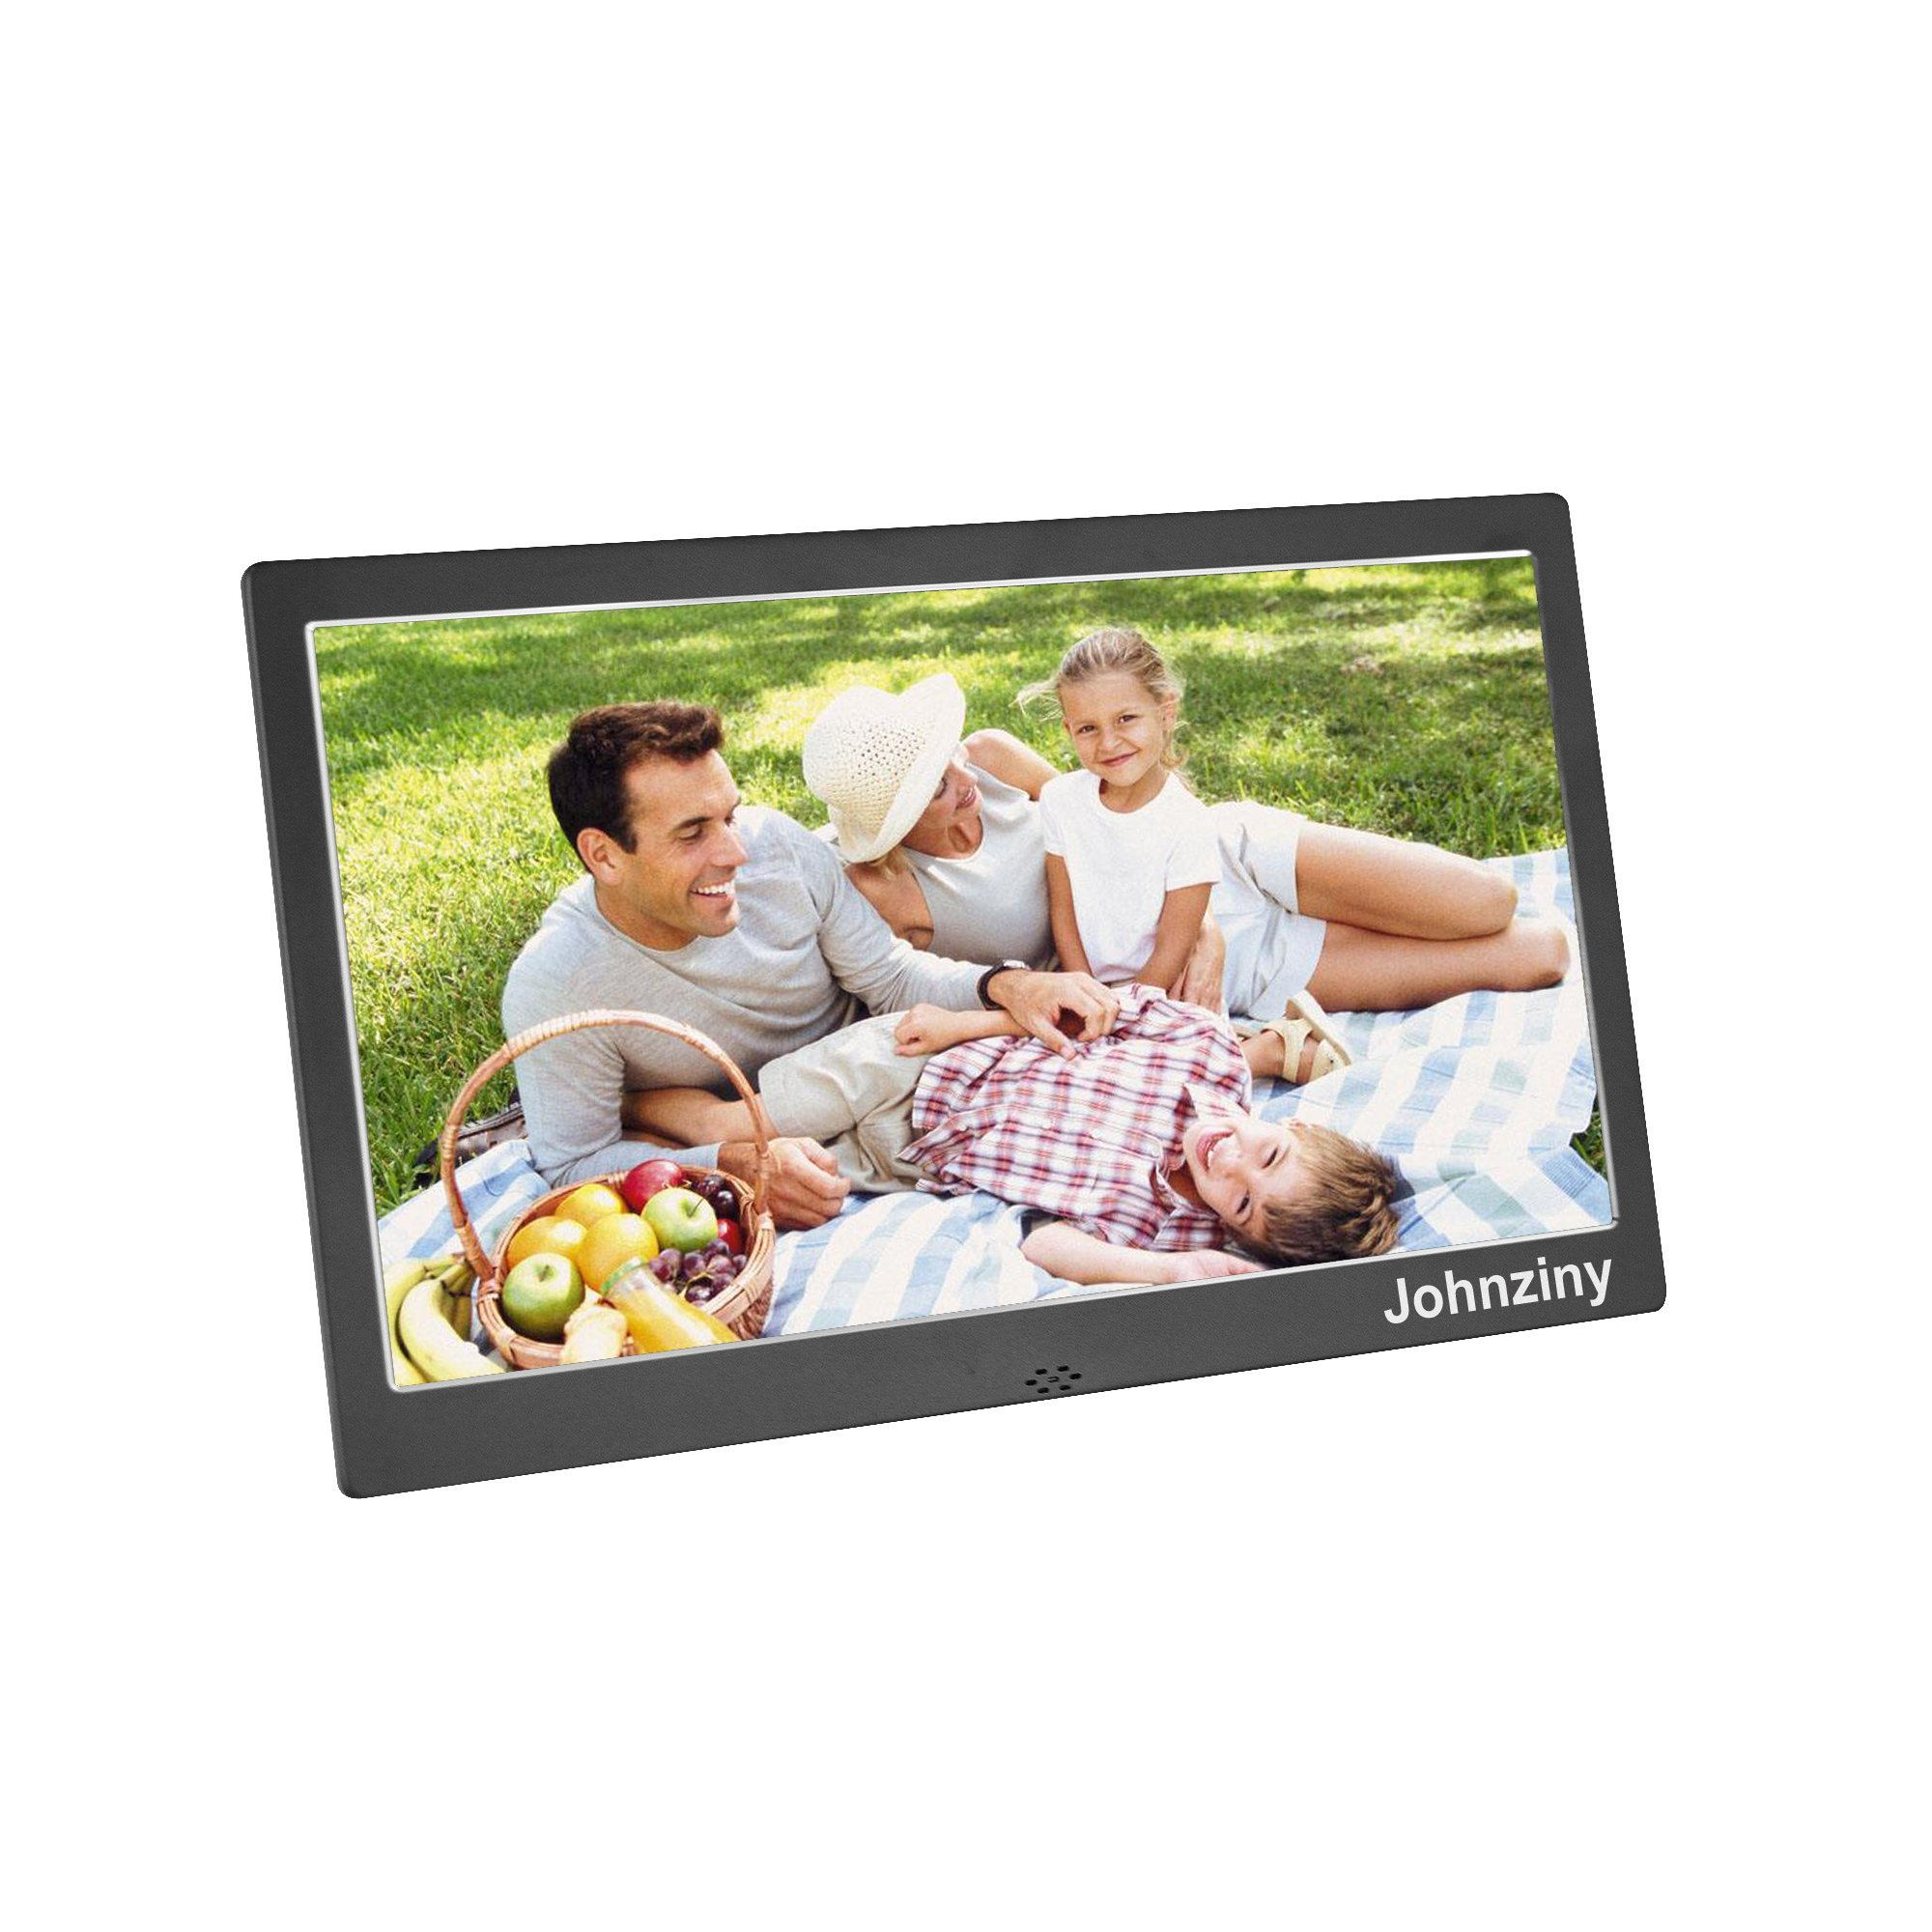 Digital Picture Frame 10 inch Metal Digital Photo Frame 1024x600 High Resolution Photo/Music/Video Player,with Remote Control/Calendar/12 Languages,USB/SD/MMC/MS Card Port